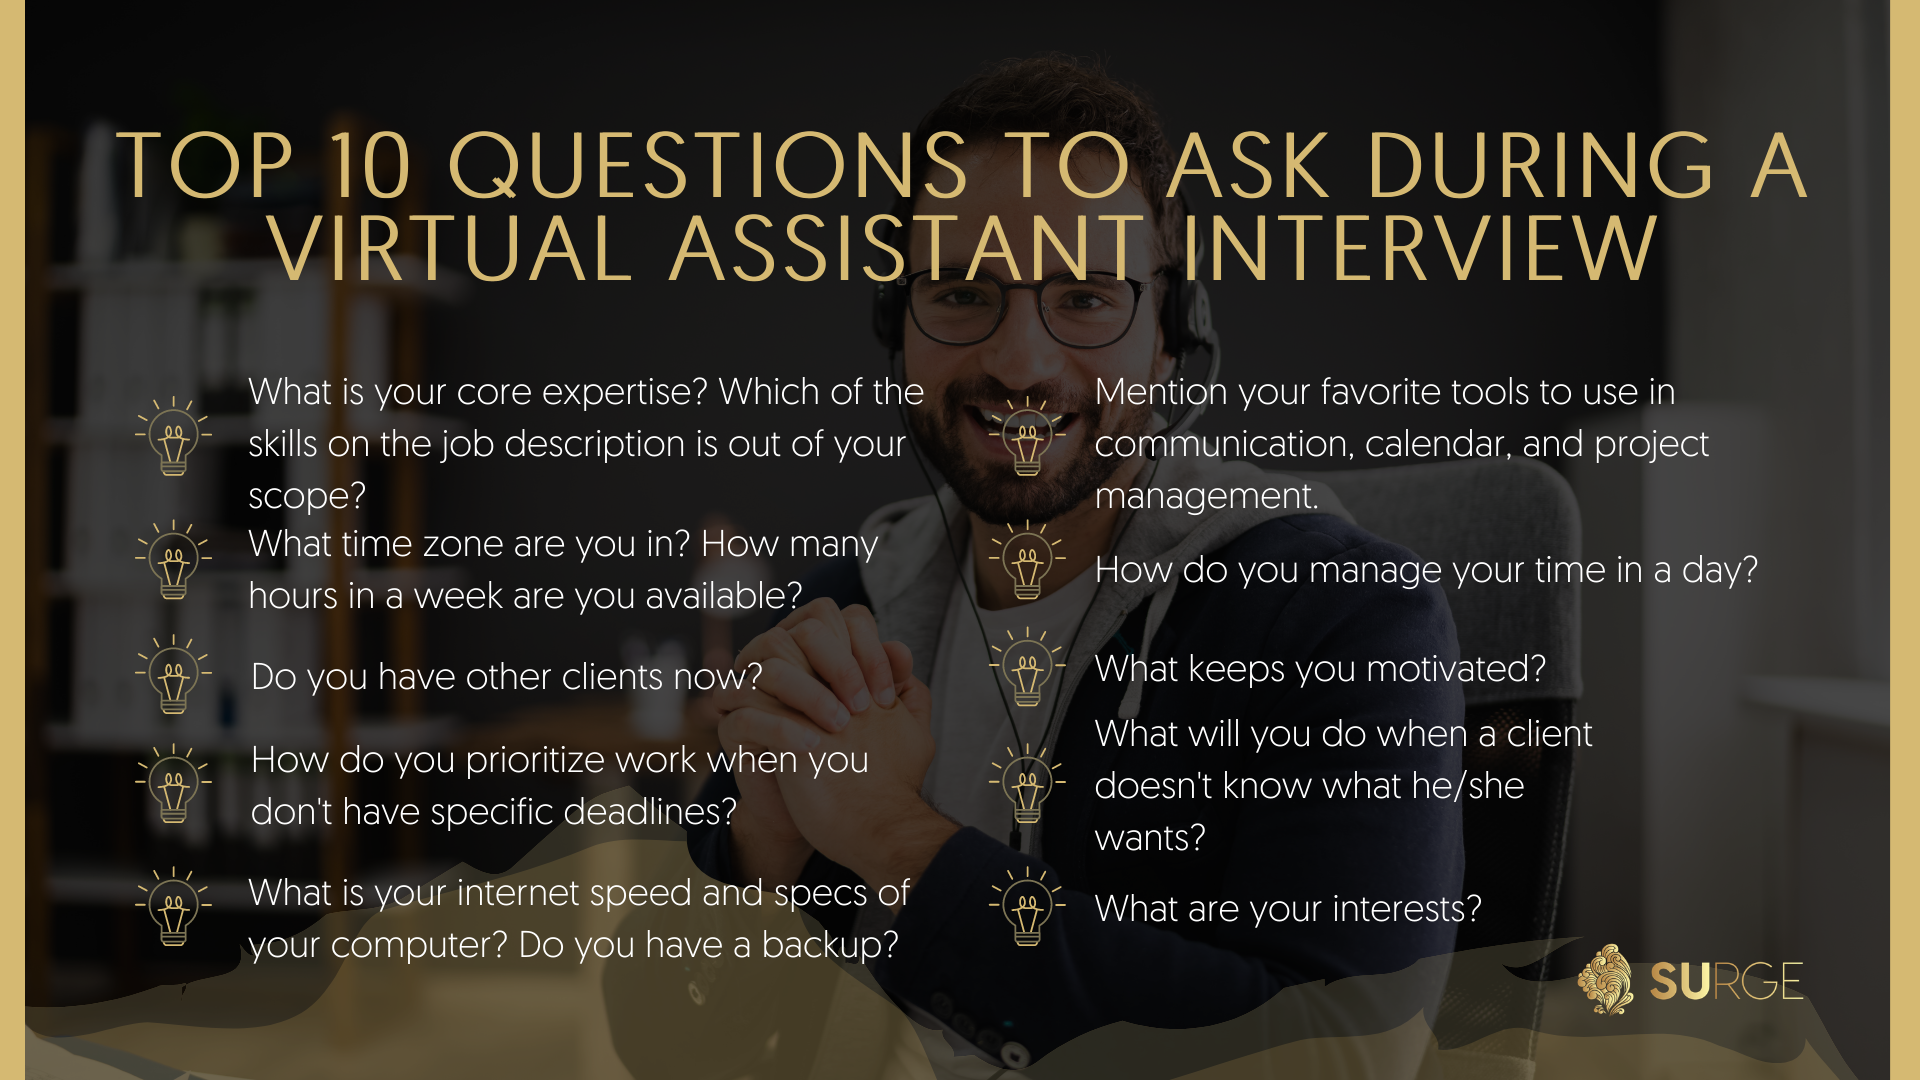 Tips About Top 10 Questions to Ask a Virtual Assistant During the Interview